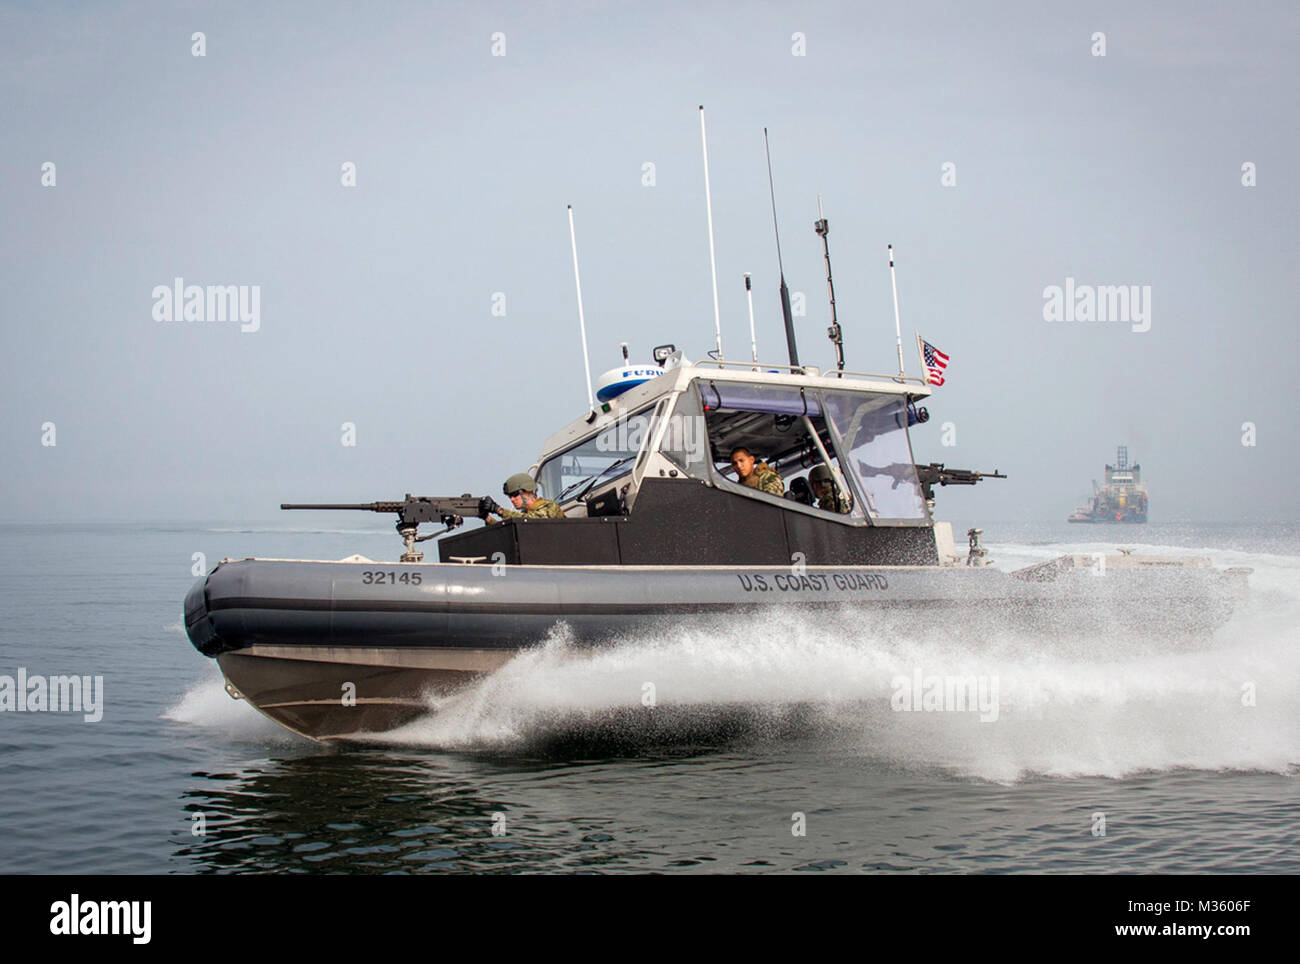 U.S. Coast Guardsmen, assigned to Port Security Unit 309 in Port Clinton, Ohio, conduct security patrols during Stock Photo